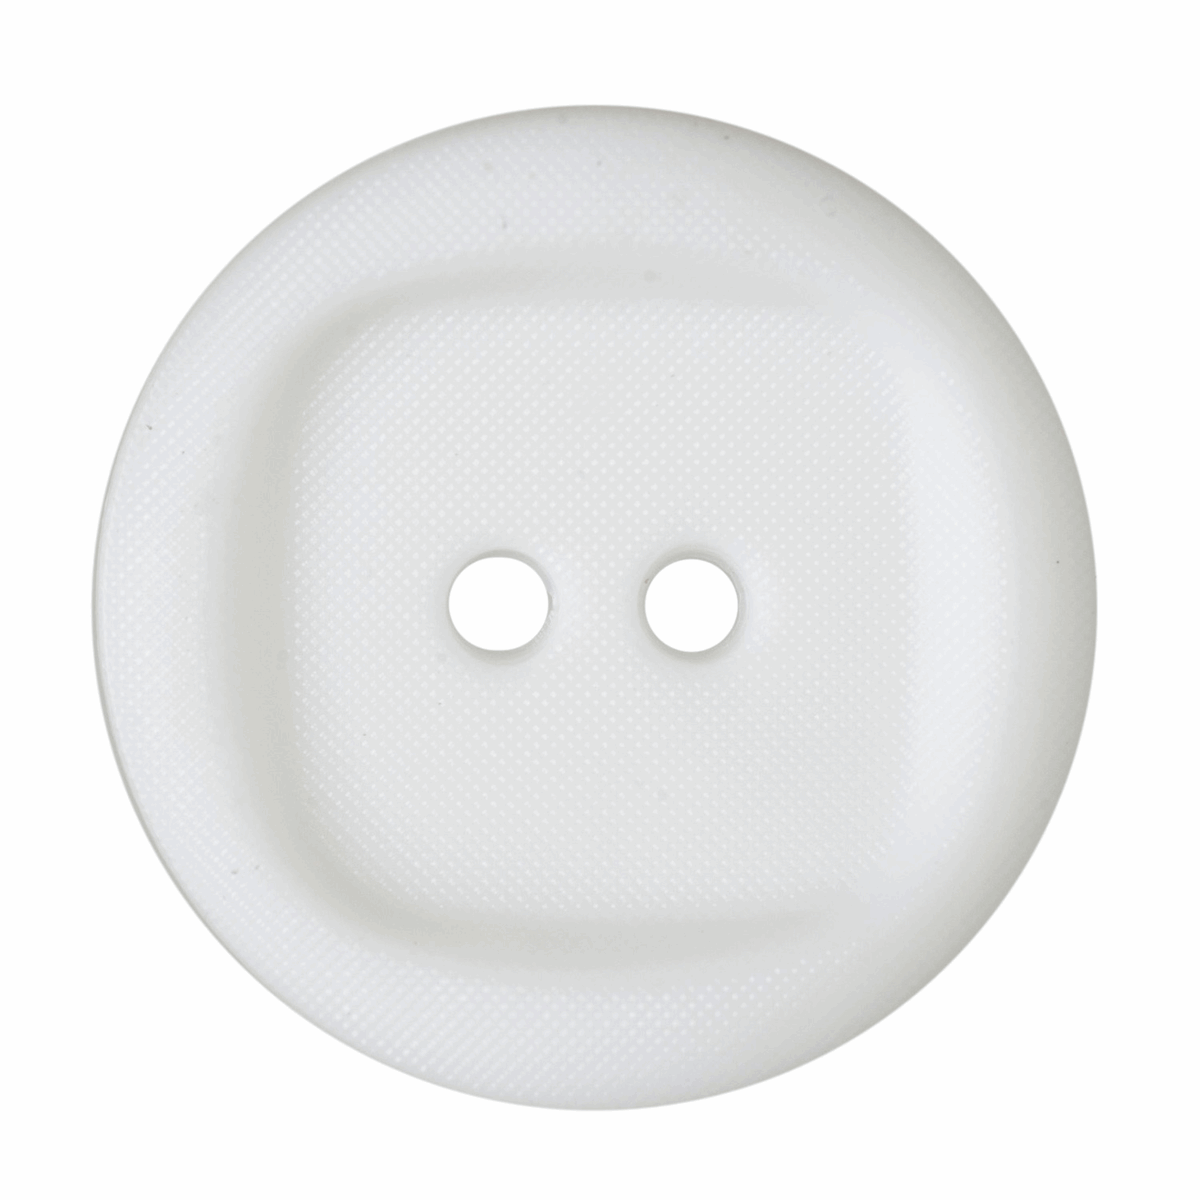 Picture of Wavy with Square Insert: 32 lignes/20mm: White